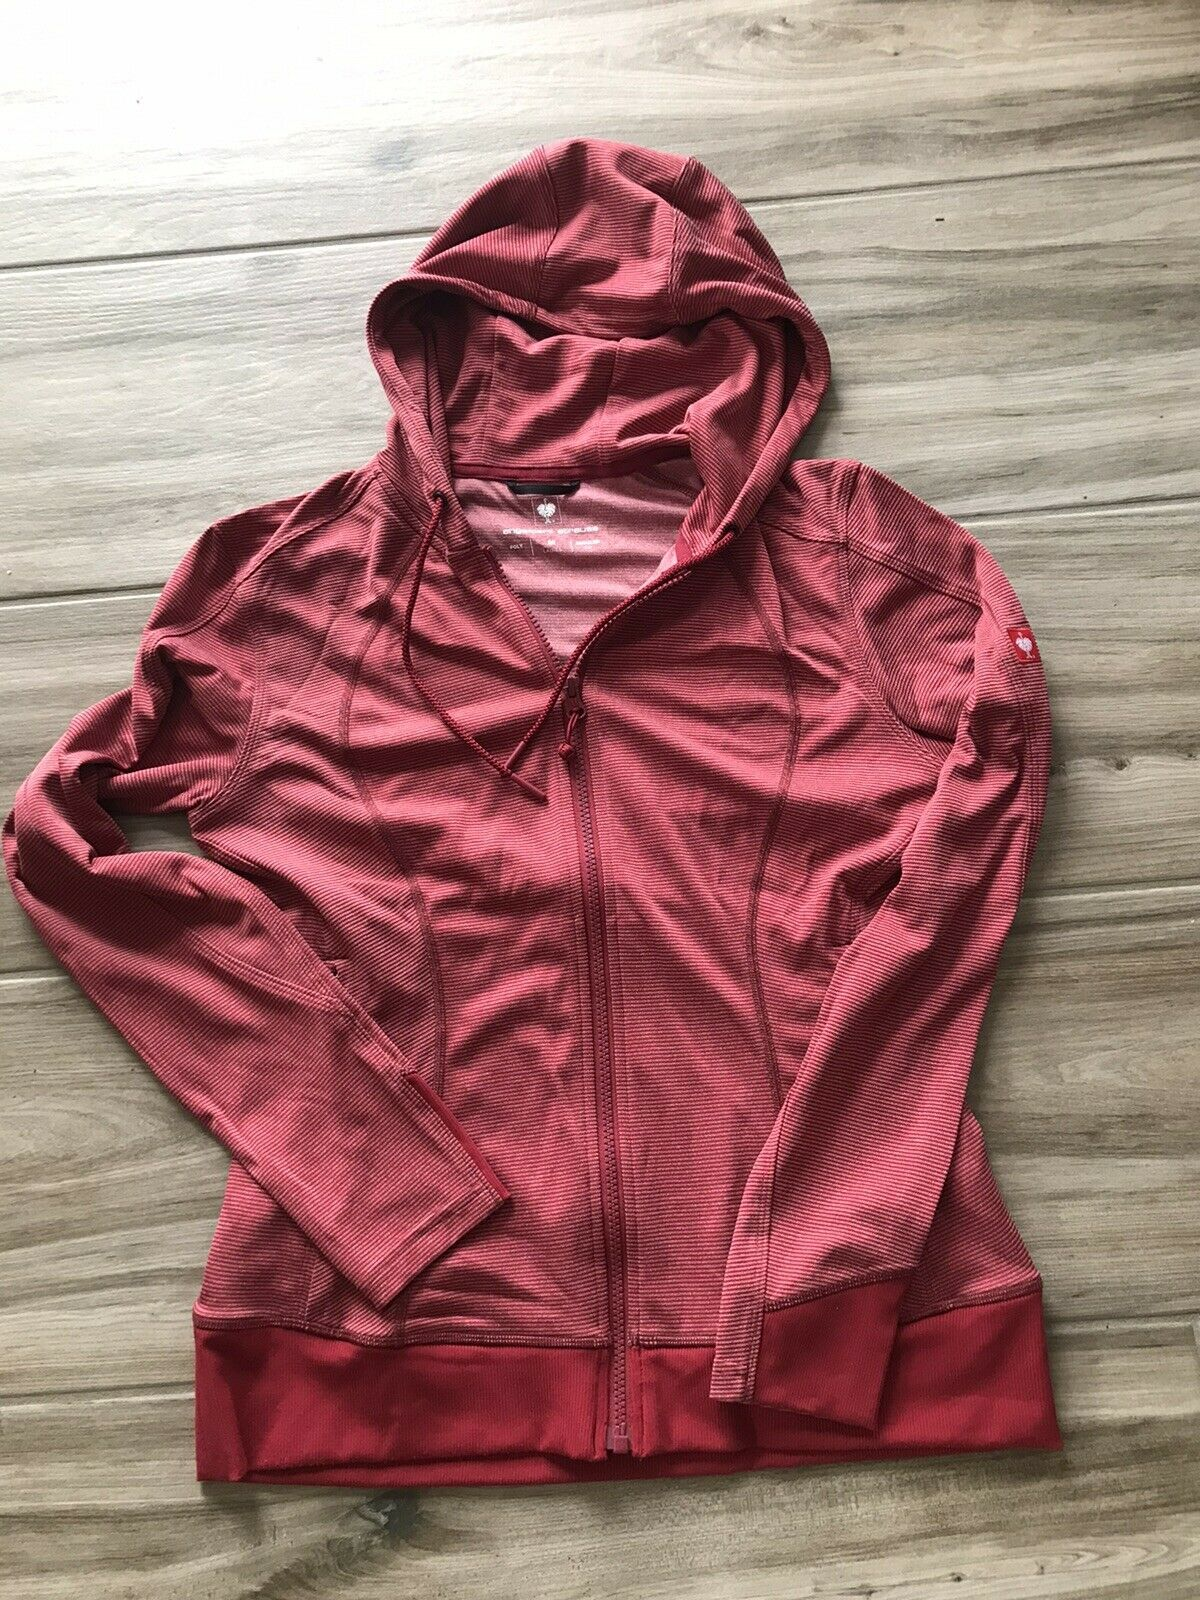 Engelber Strauss Hooded Jacket Womens Size M